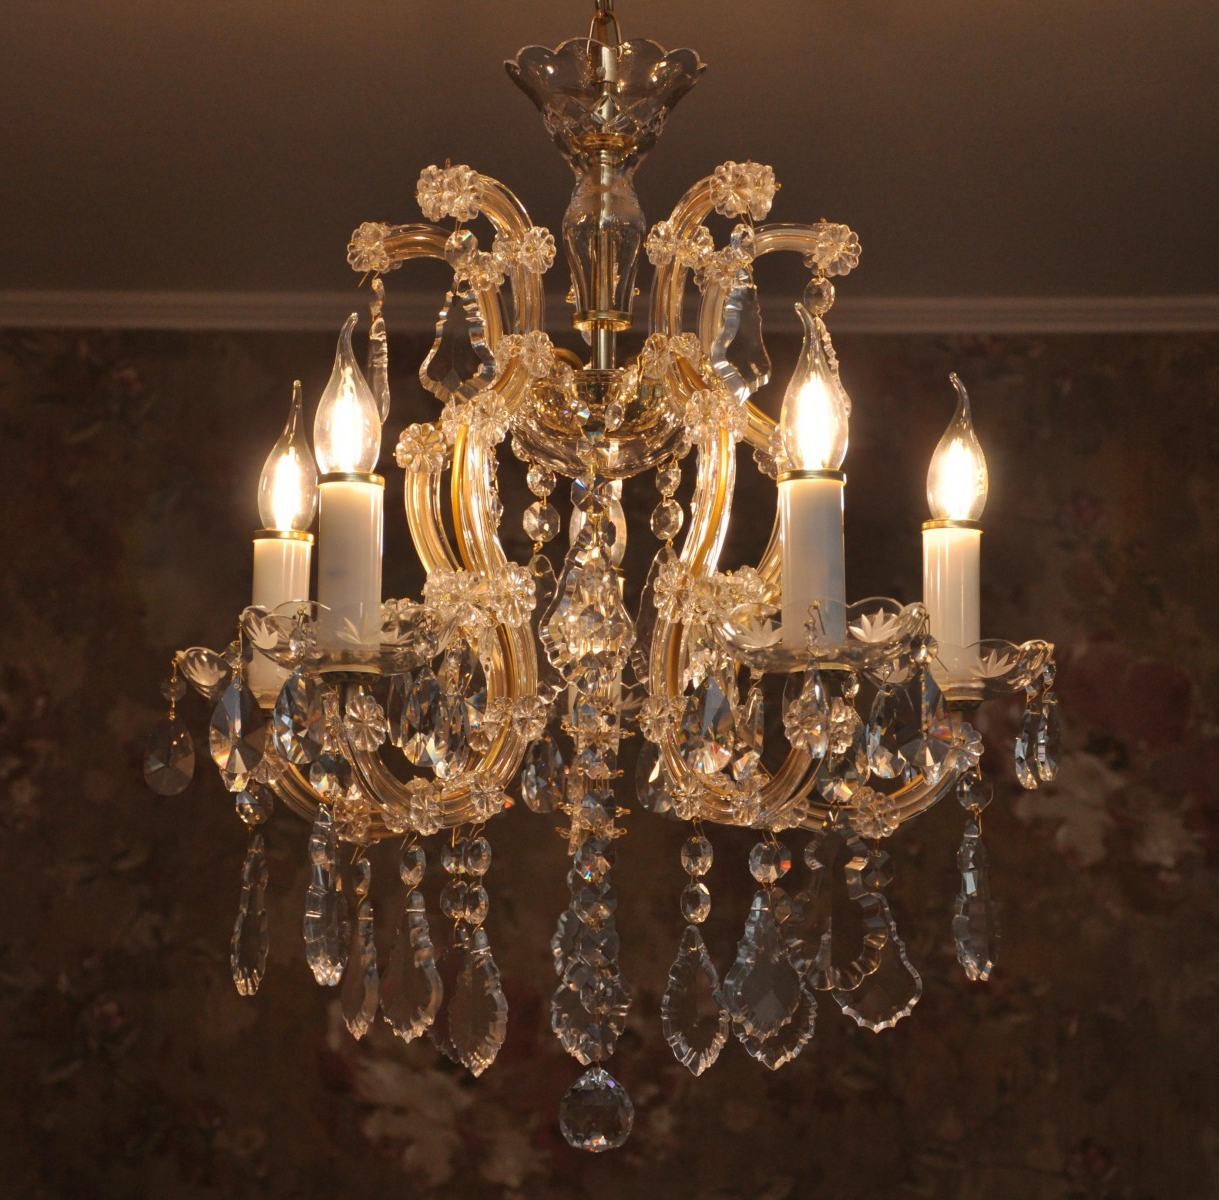 5 Flames Maria Theresa Crystal Chandelier With Pendeloques & Decorated  Bobeches Inside Fashionable Thresa 5 Light Shaded Chandeliers (View 12 of 25)